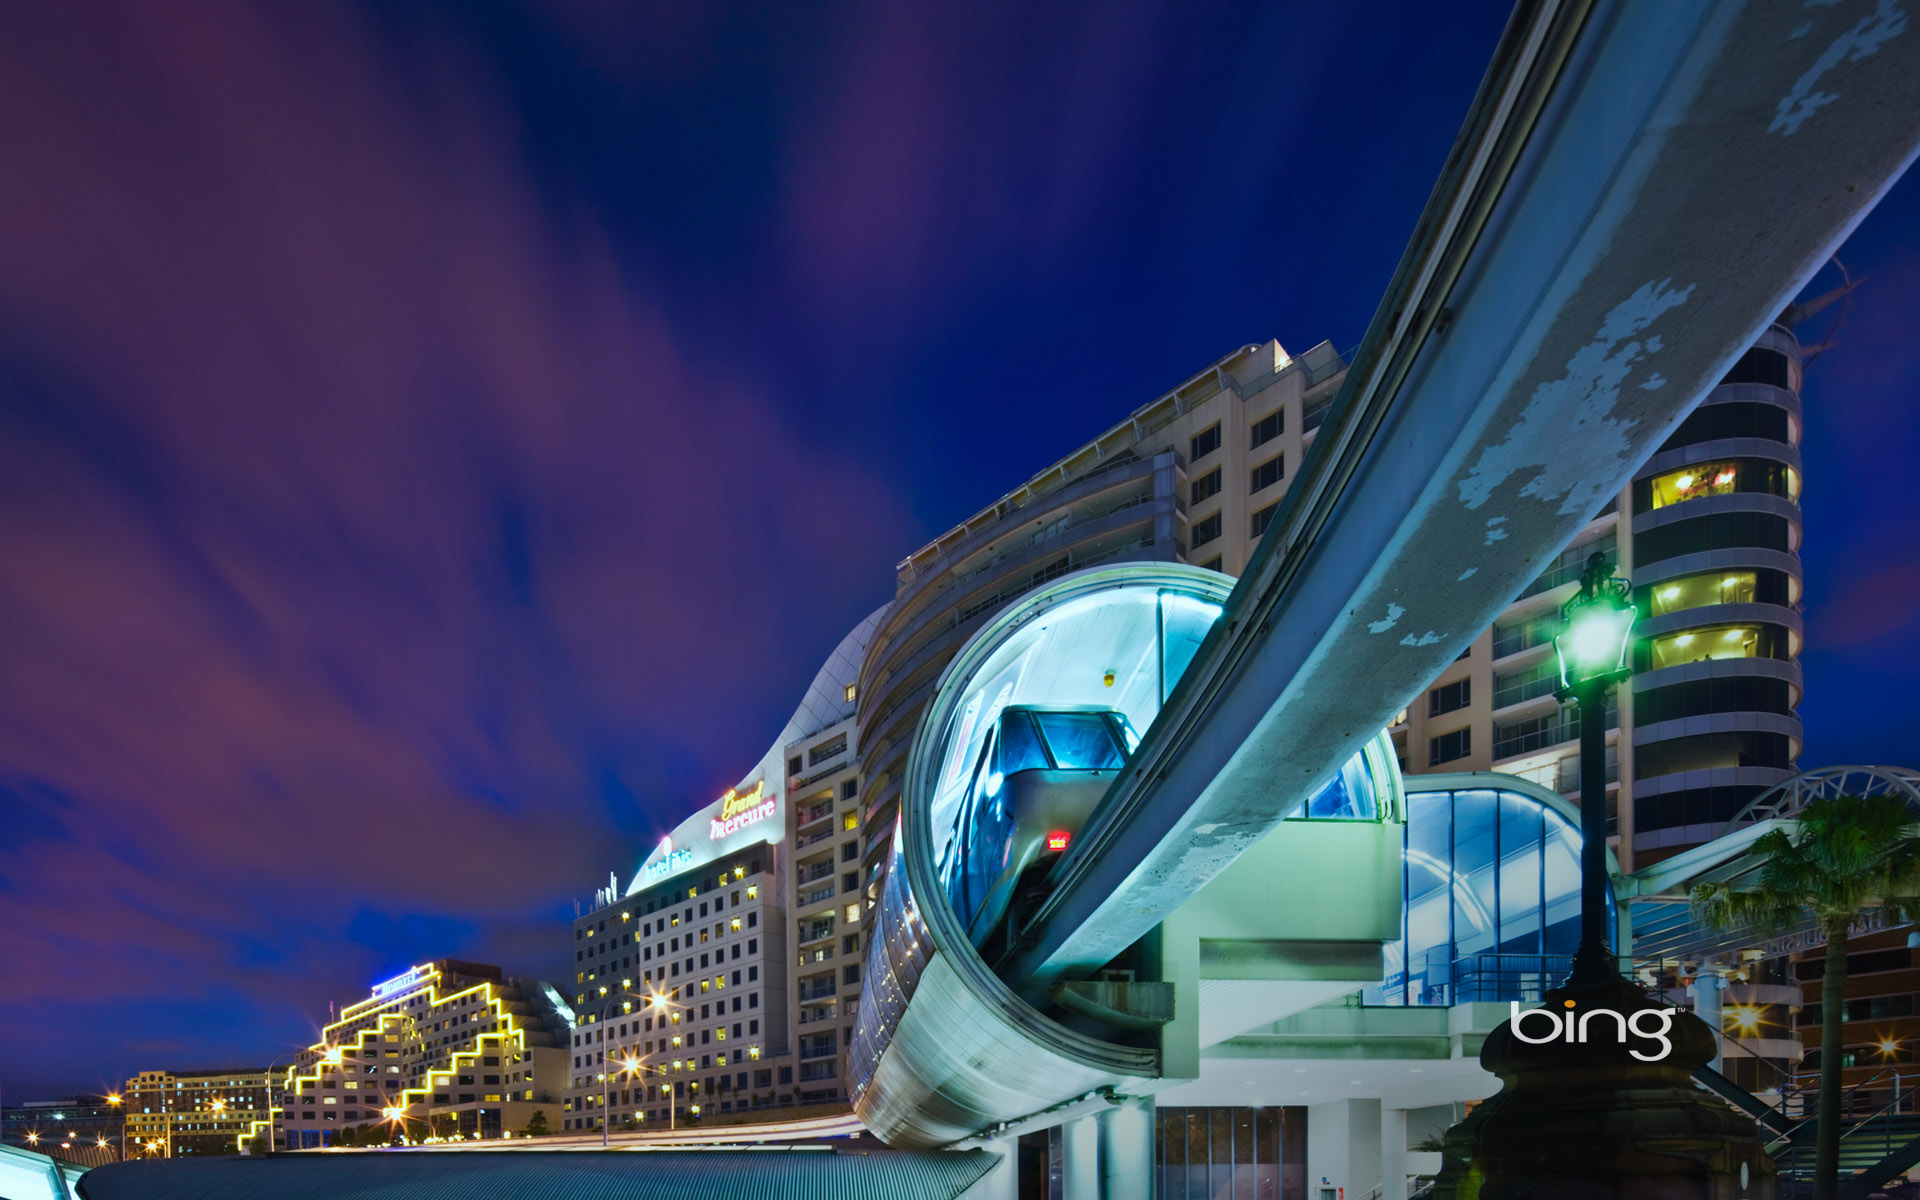 Monorail Darling Harbour Sydney